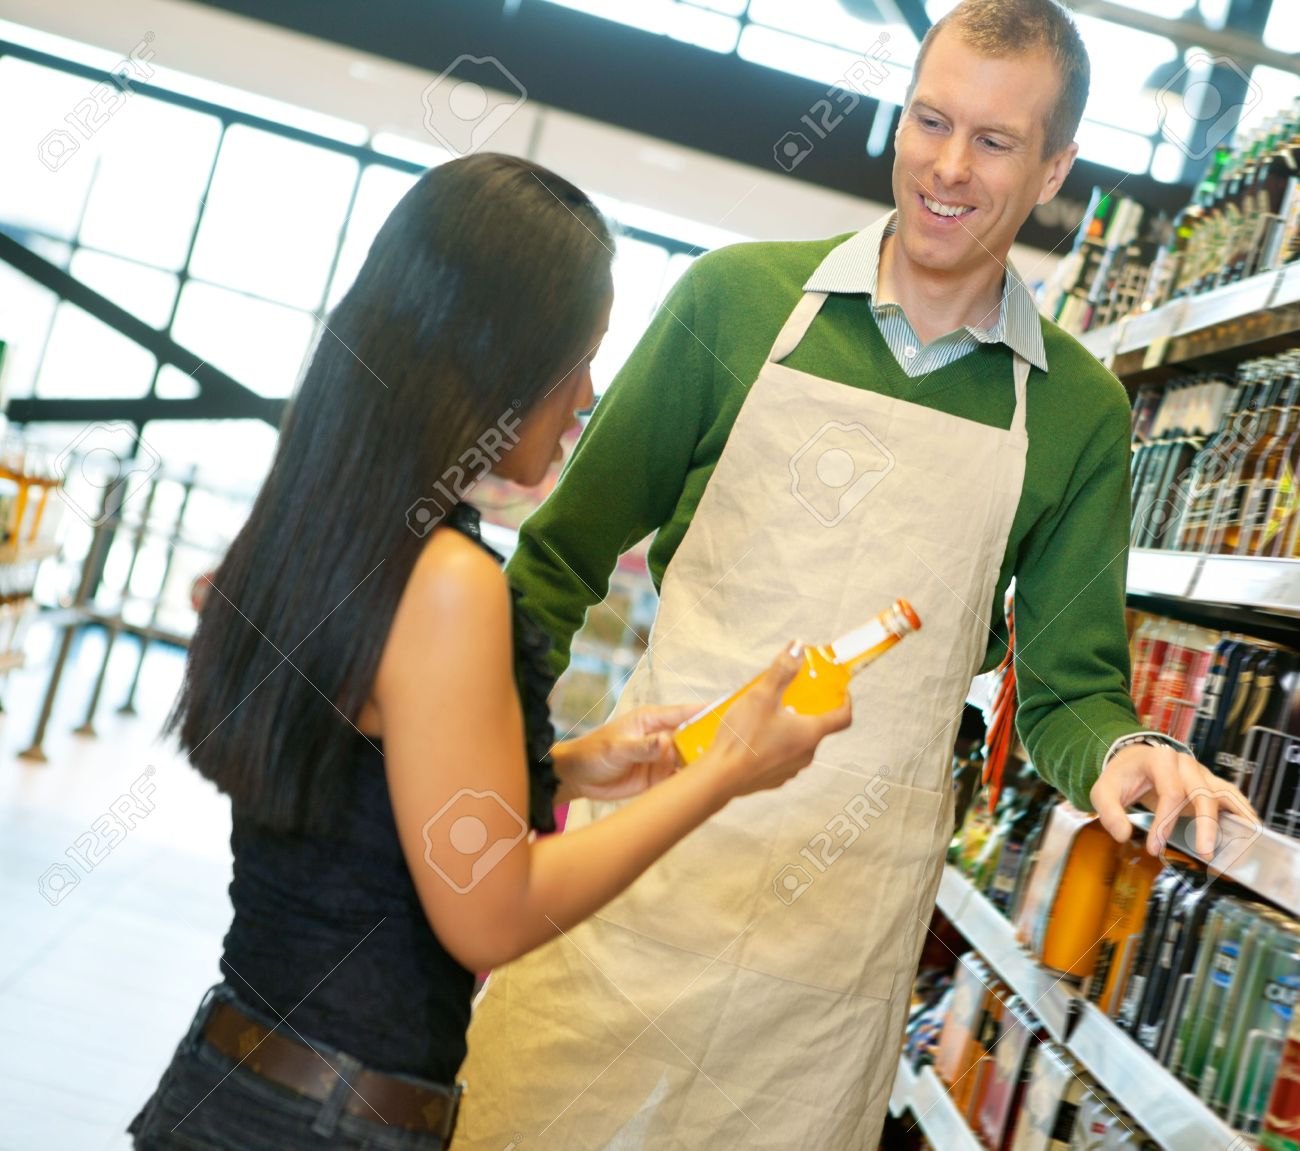 Woman standing with smiling store worker while holding drink bottle in grocery store Stock Photo - 10033226